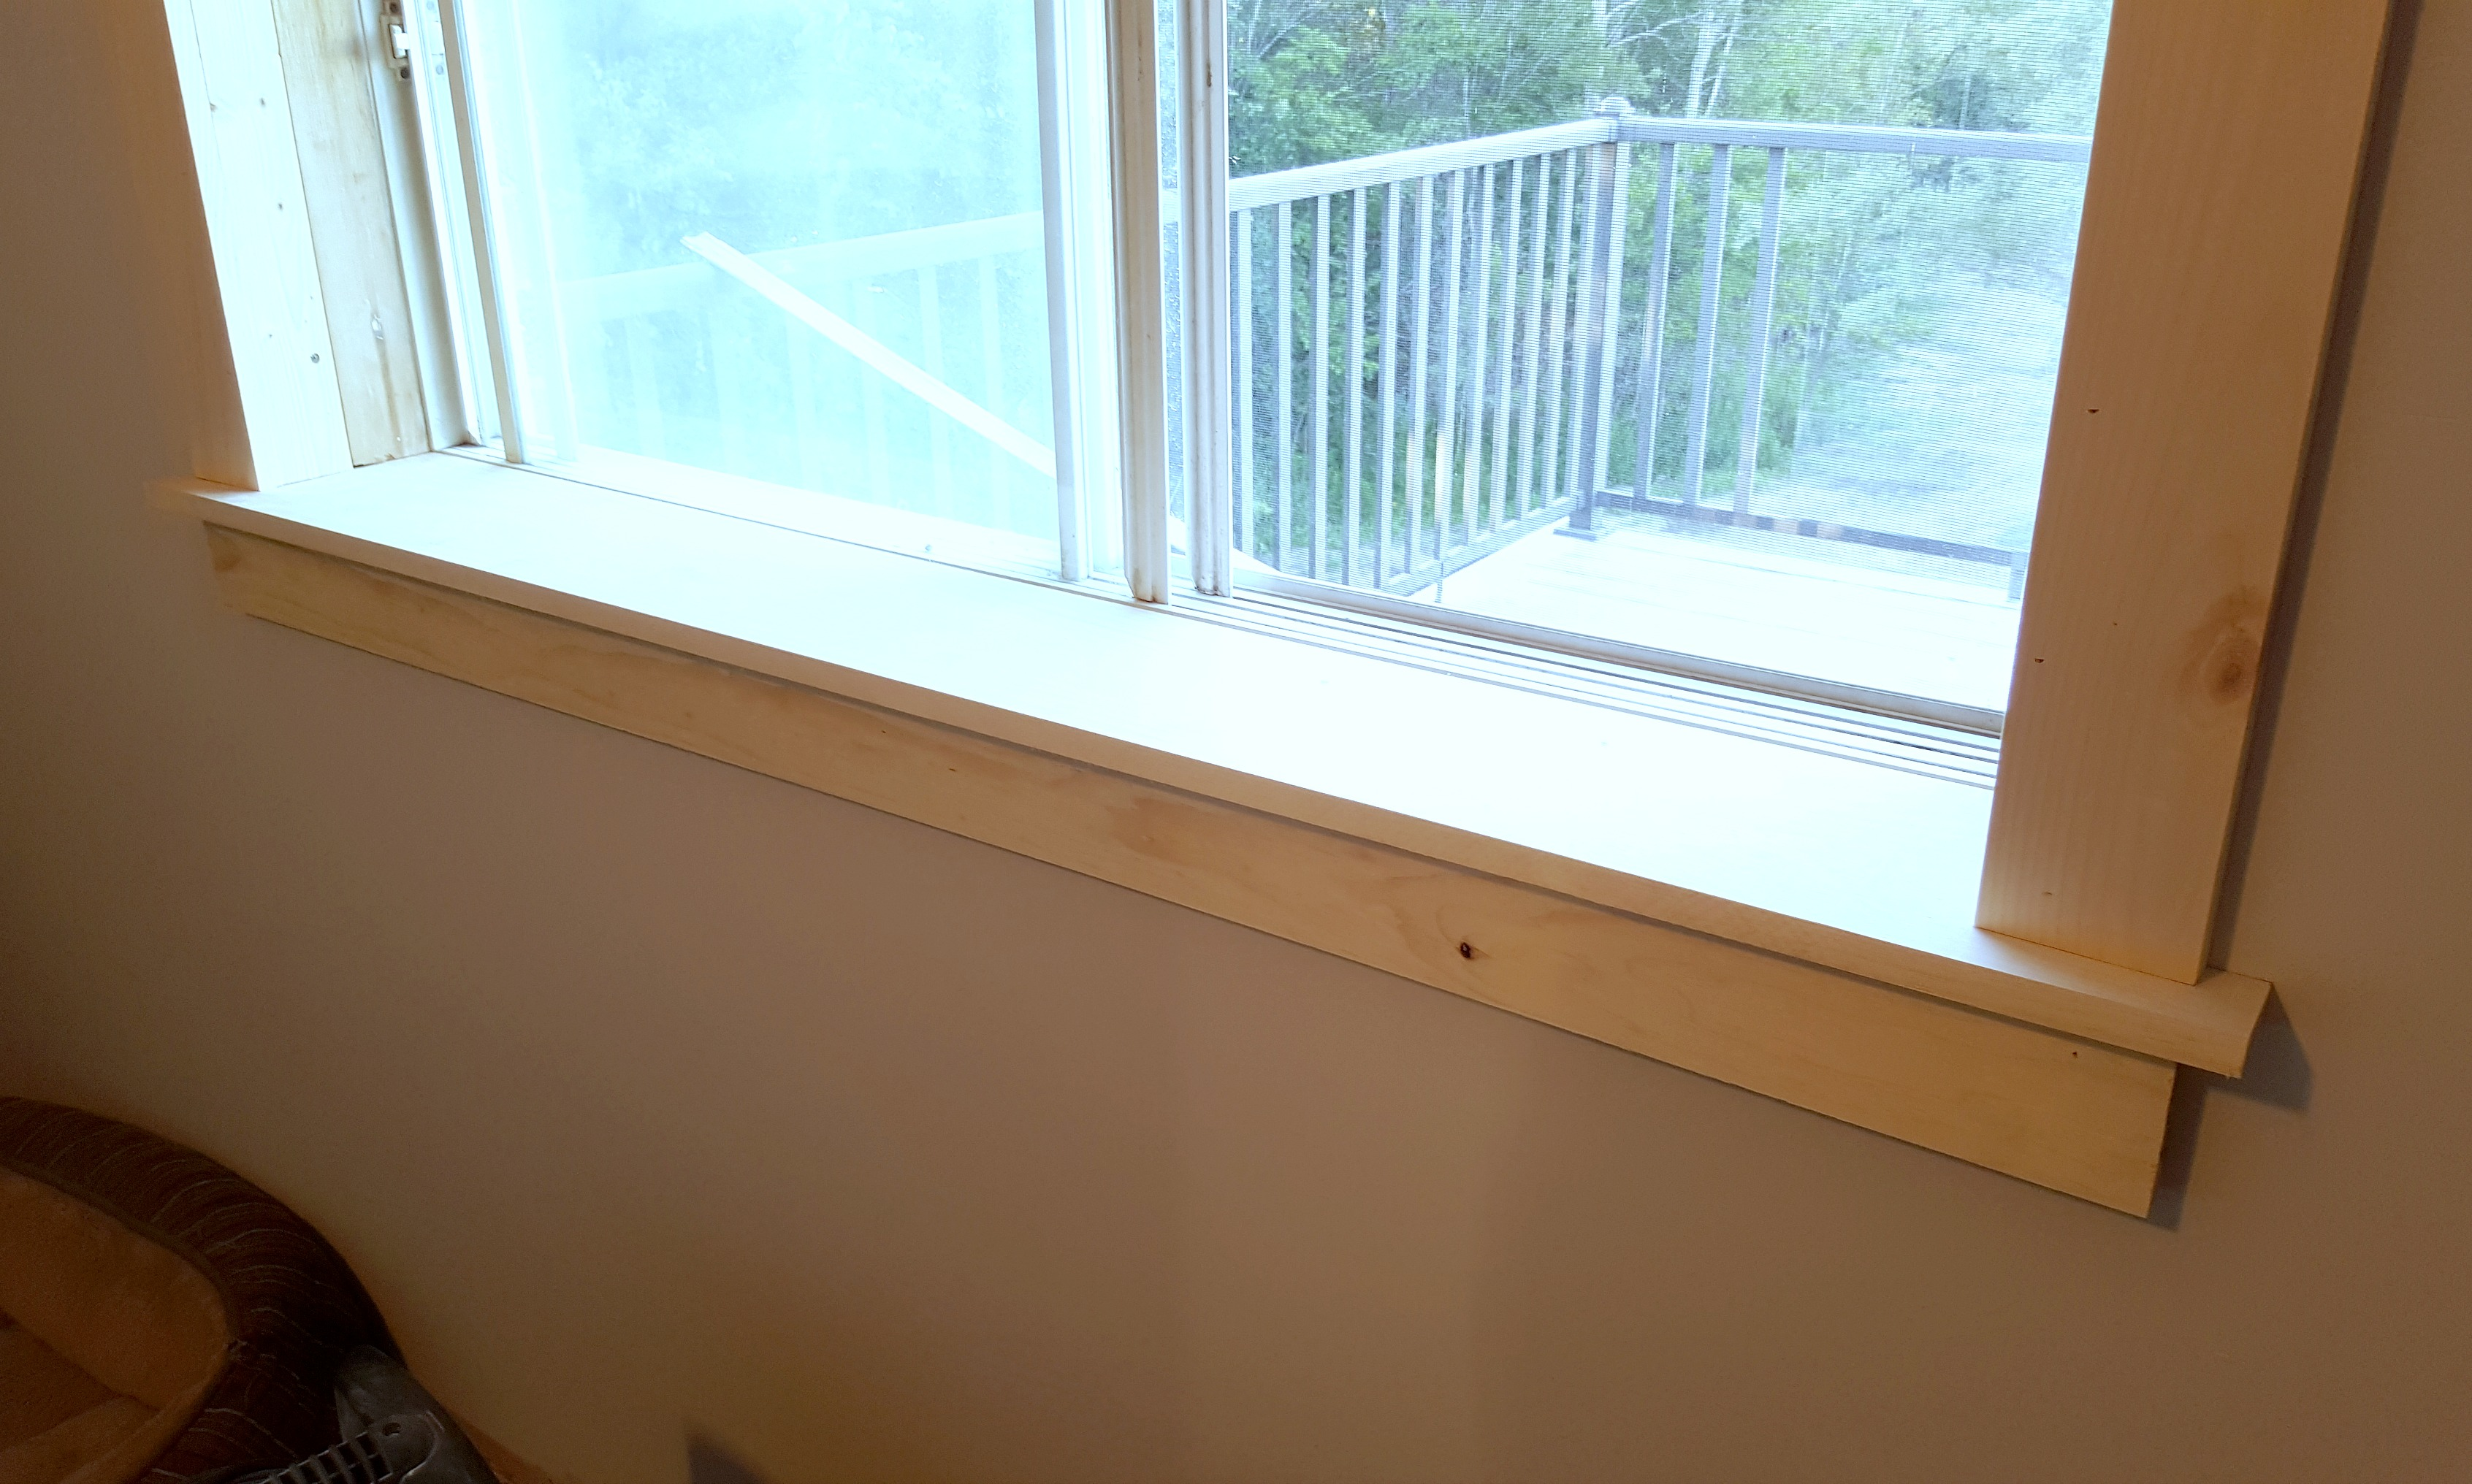 Turtles And Tails Installing Craftsman Style Door Window Trim